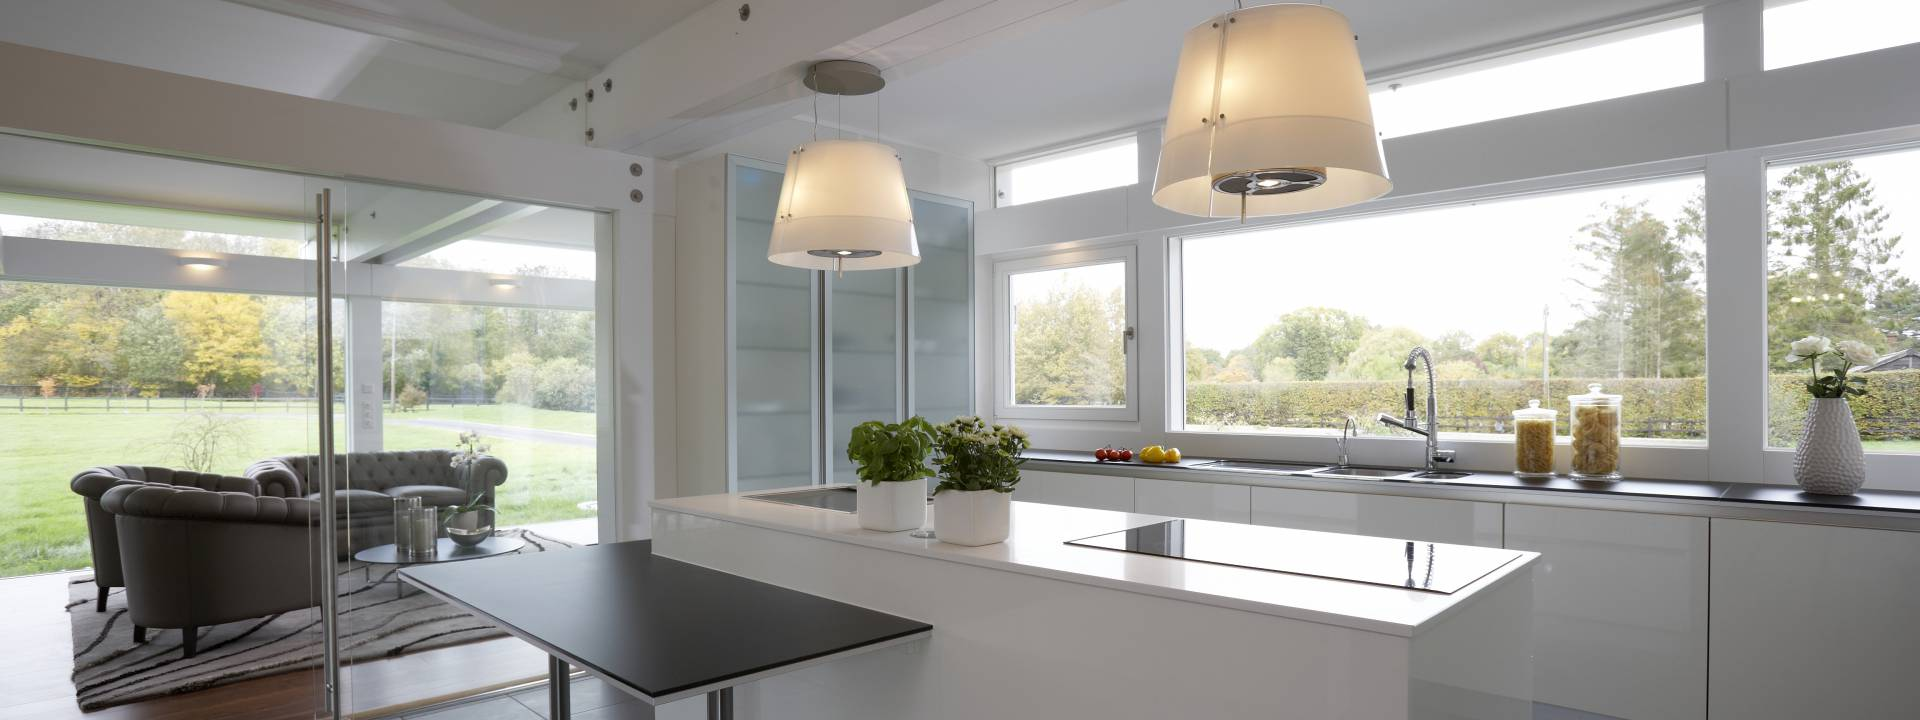 4-Modern-Huf-house-Farnham-UK-Taylor-Interiors